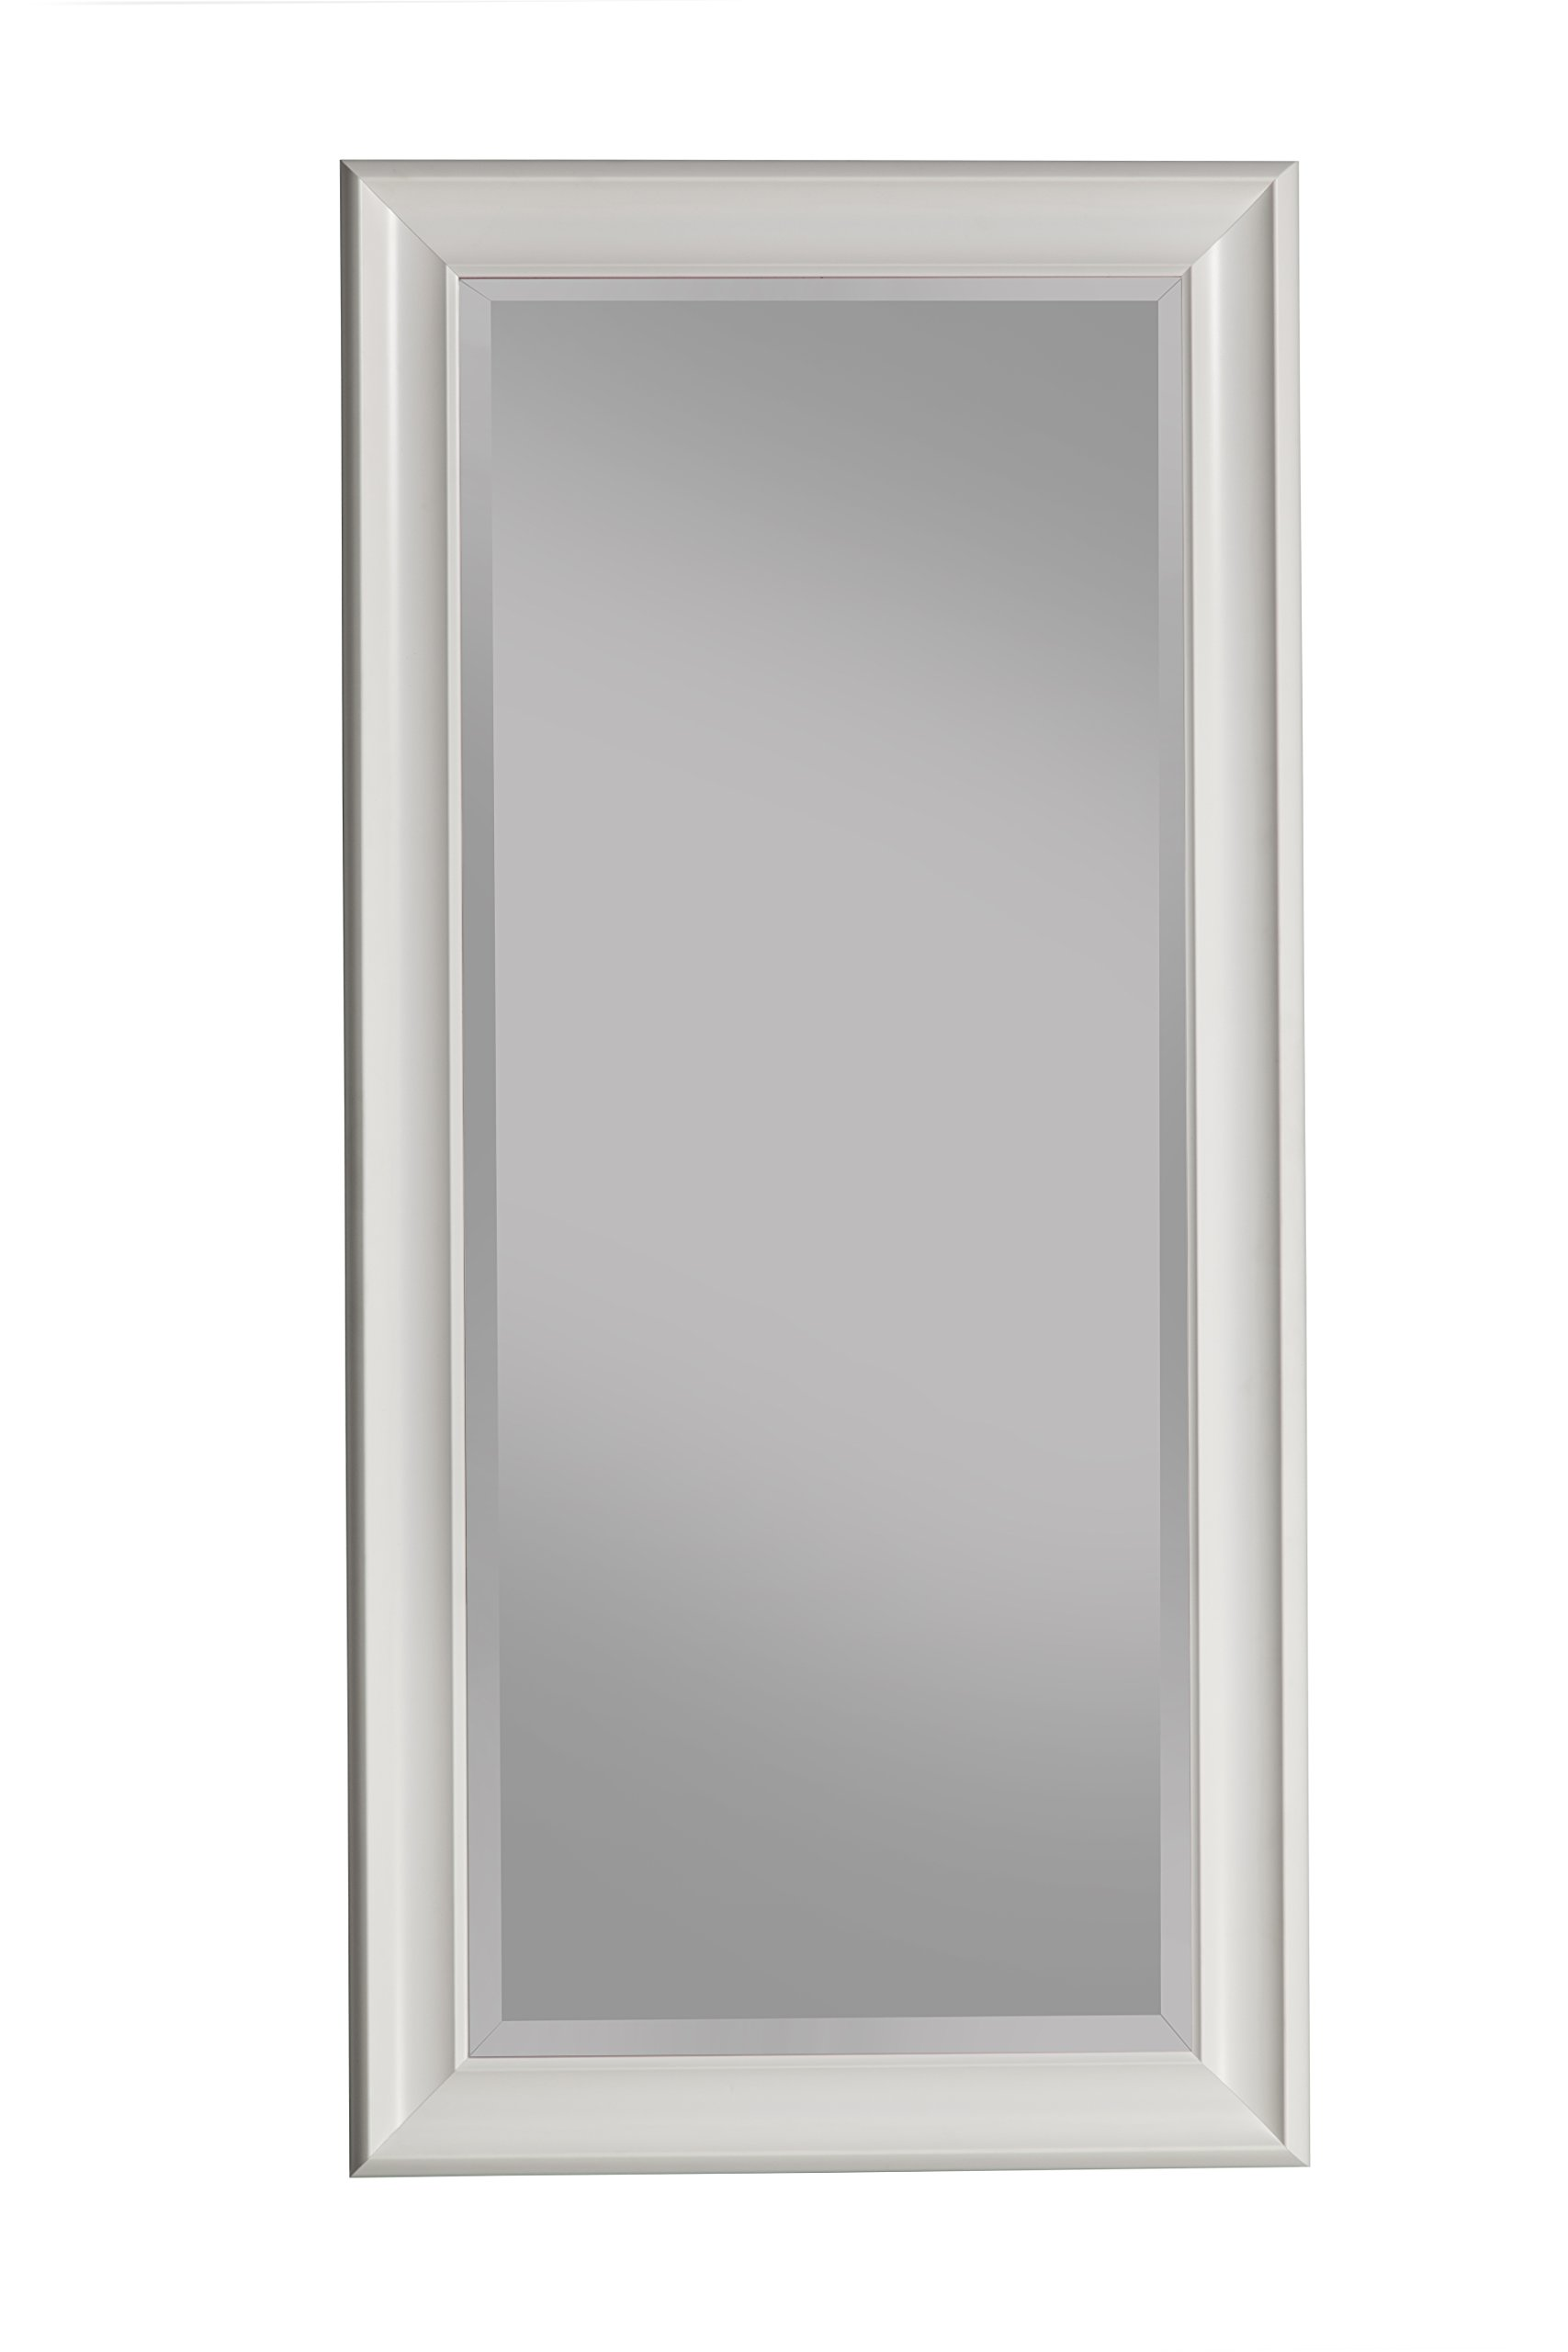 Sandberg Furniture Frost white Full Length Leaner Mirror